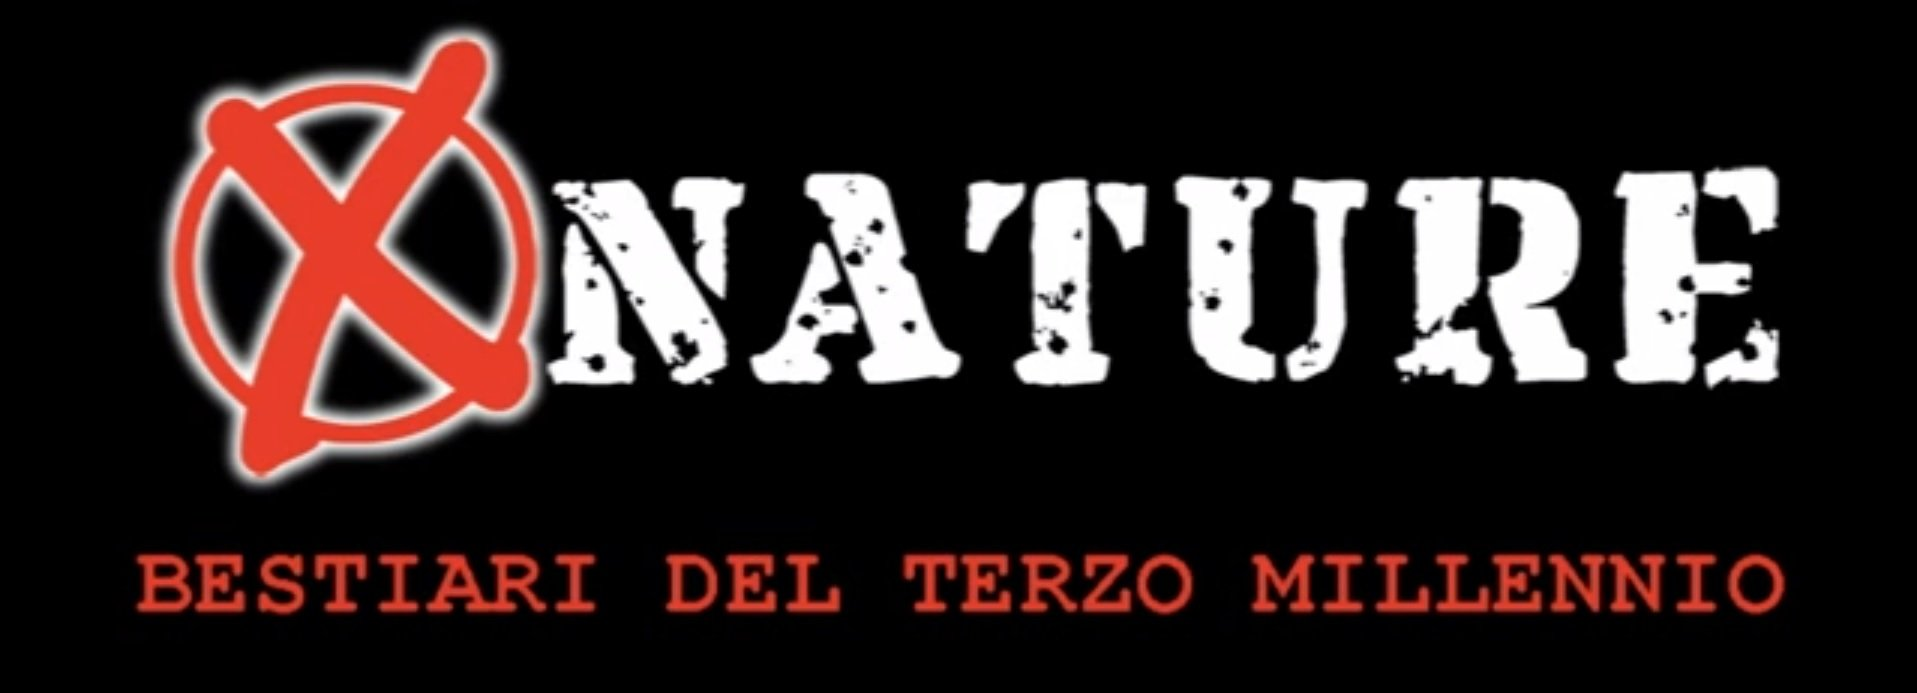 x-nature_banner